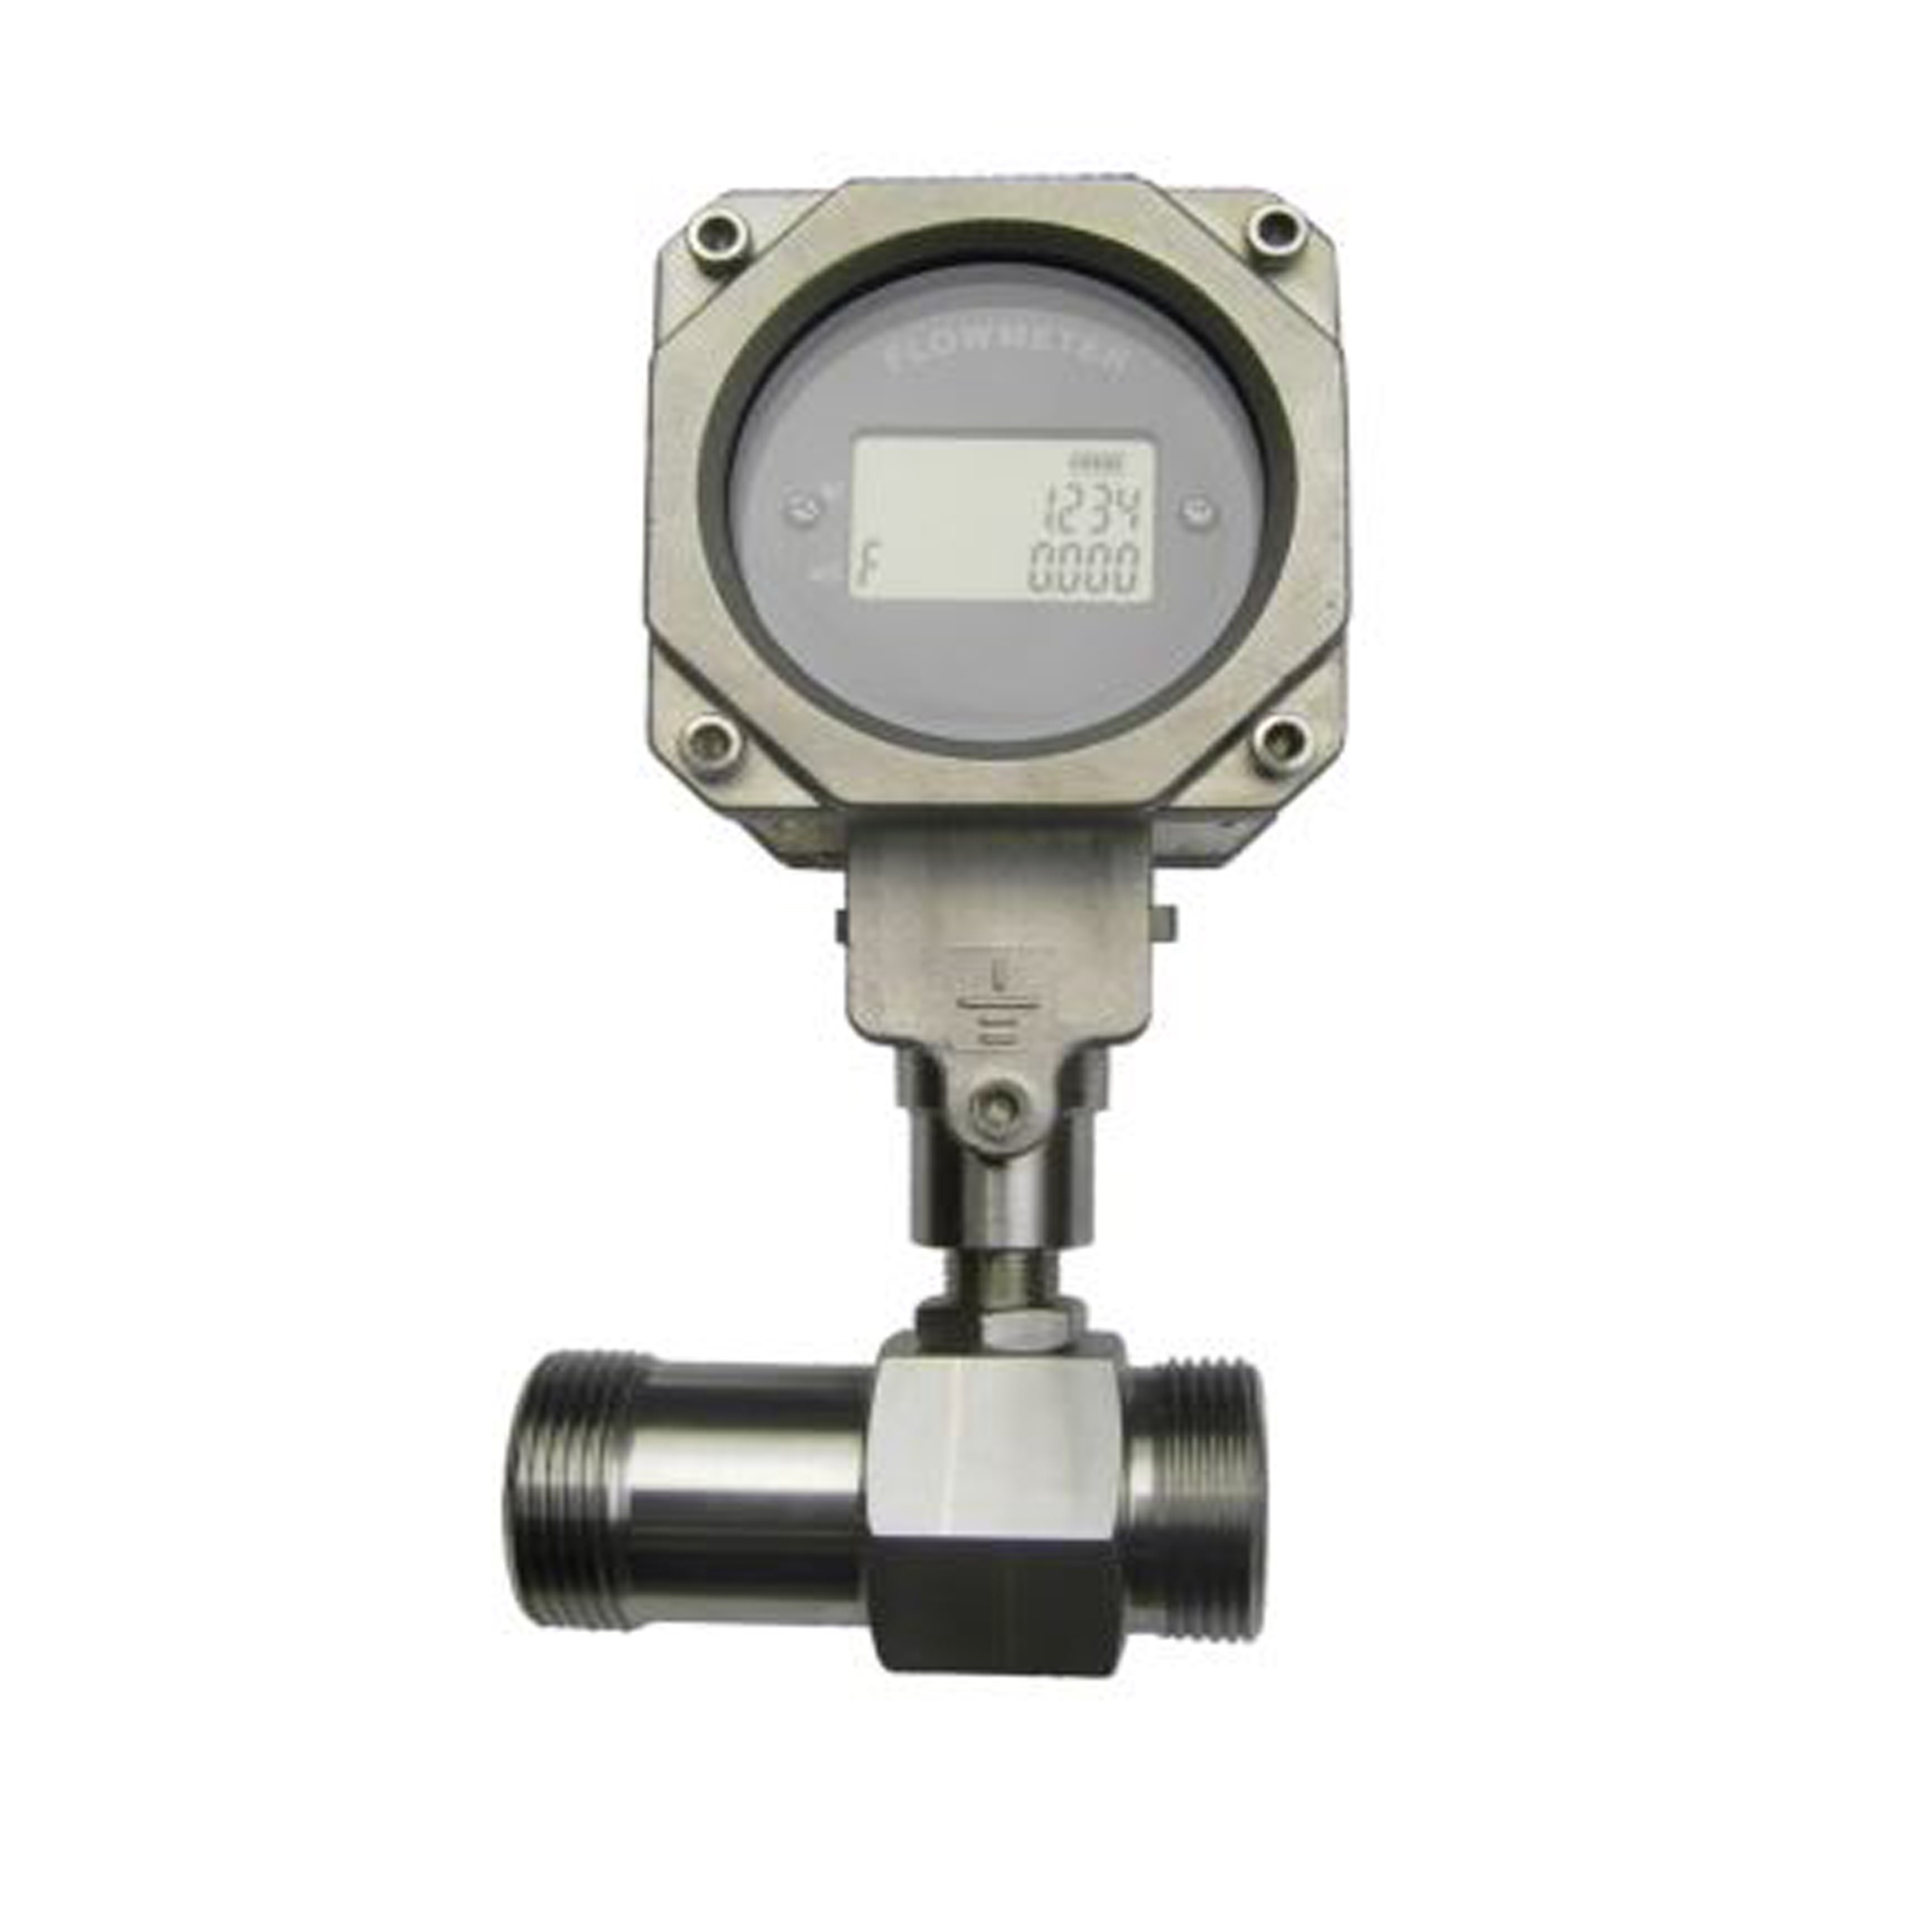 Threaded Turbine Flow Meter EX-Proof with LCD